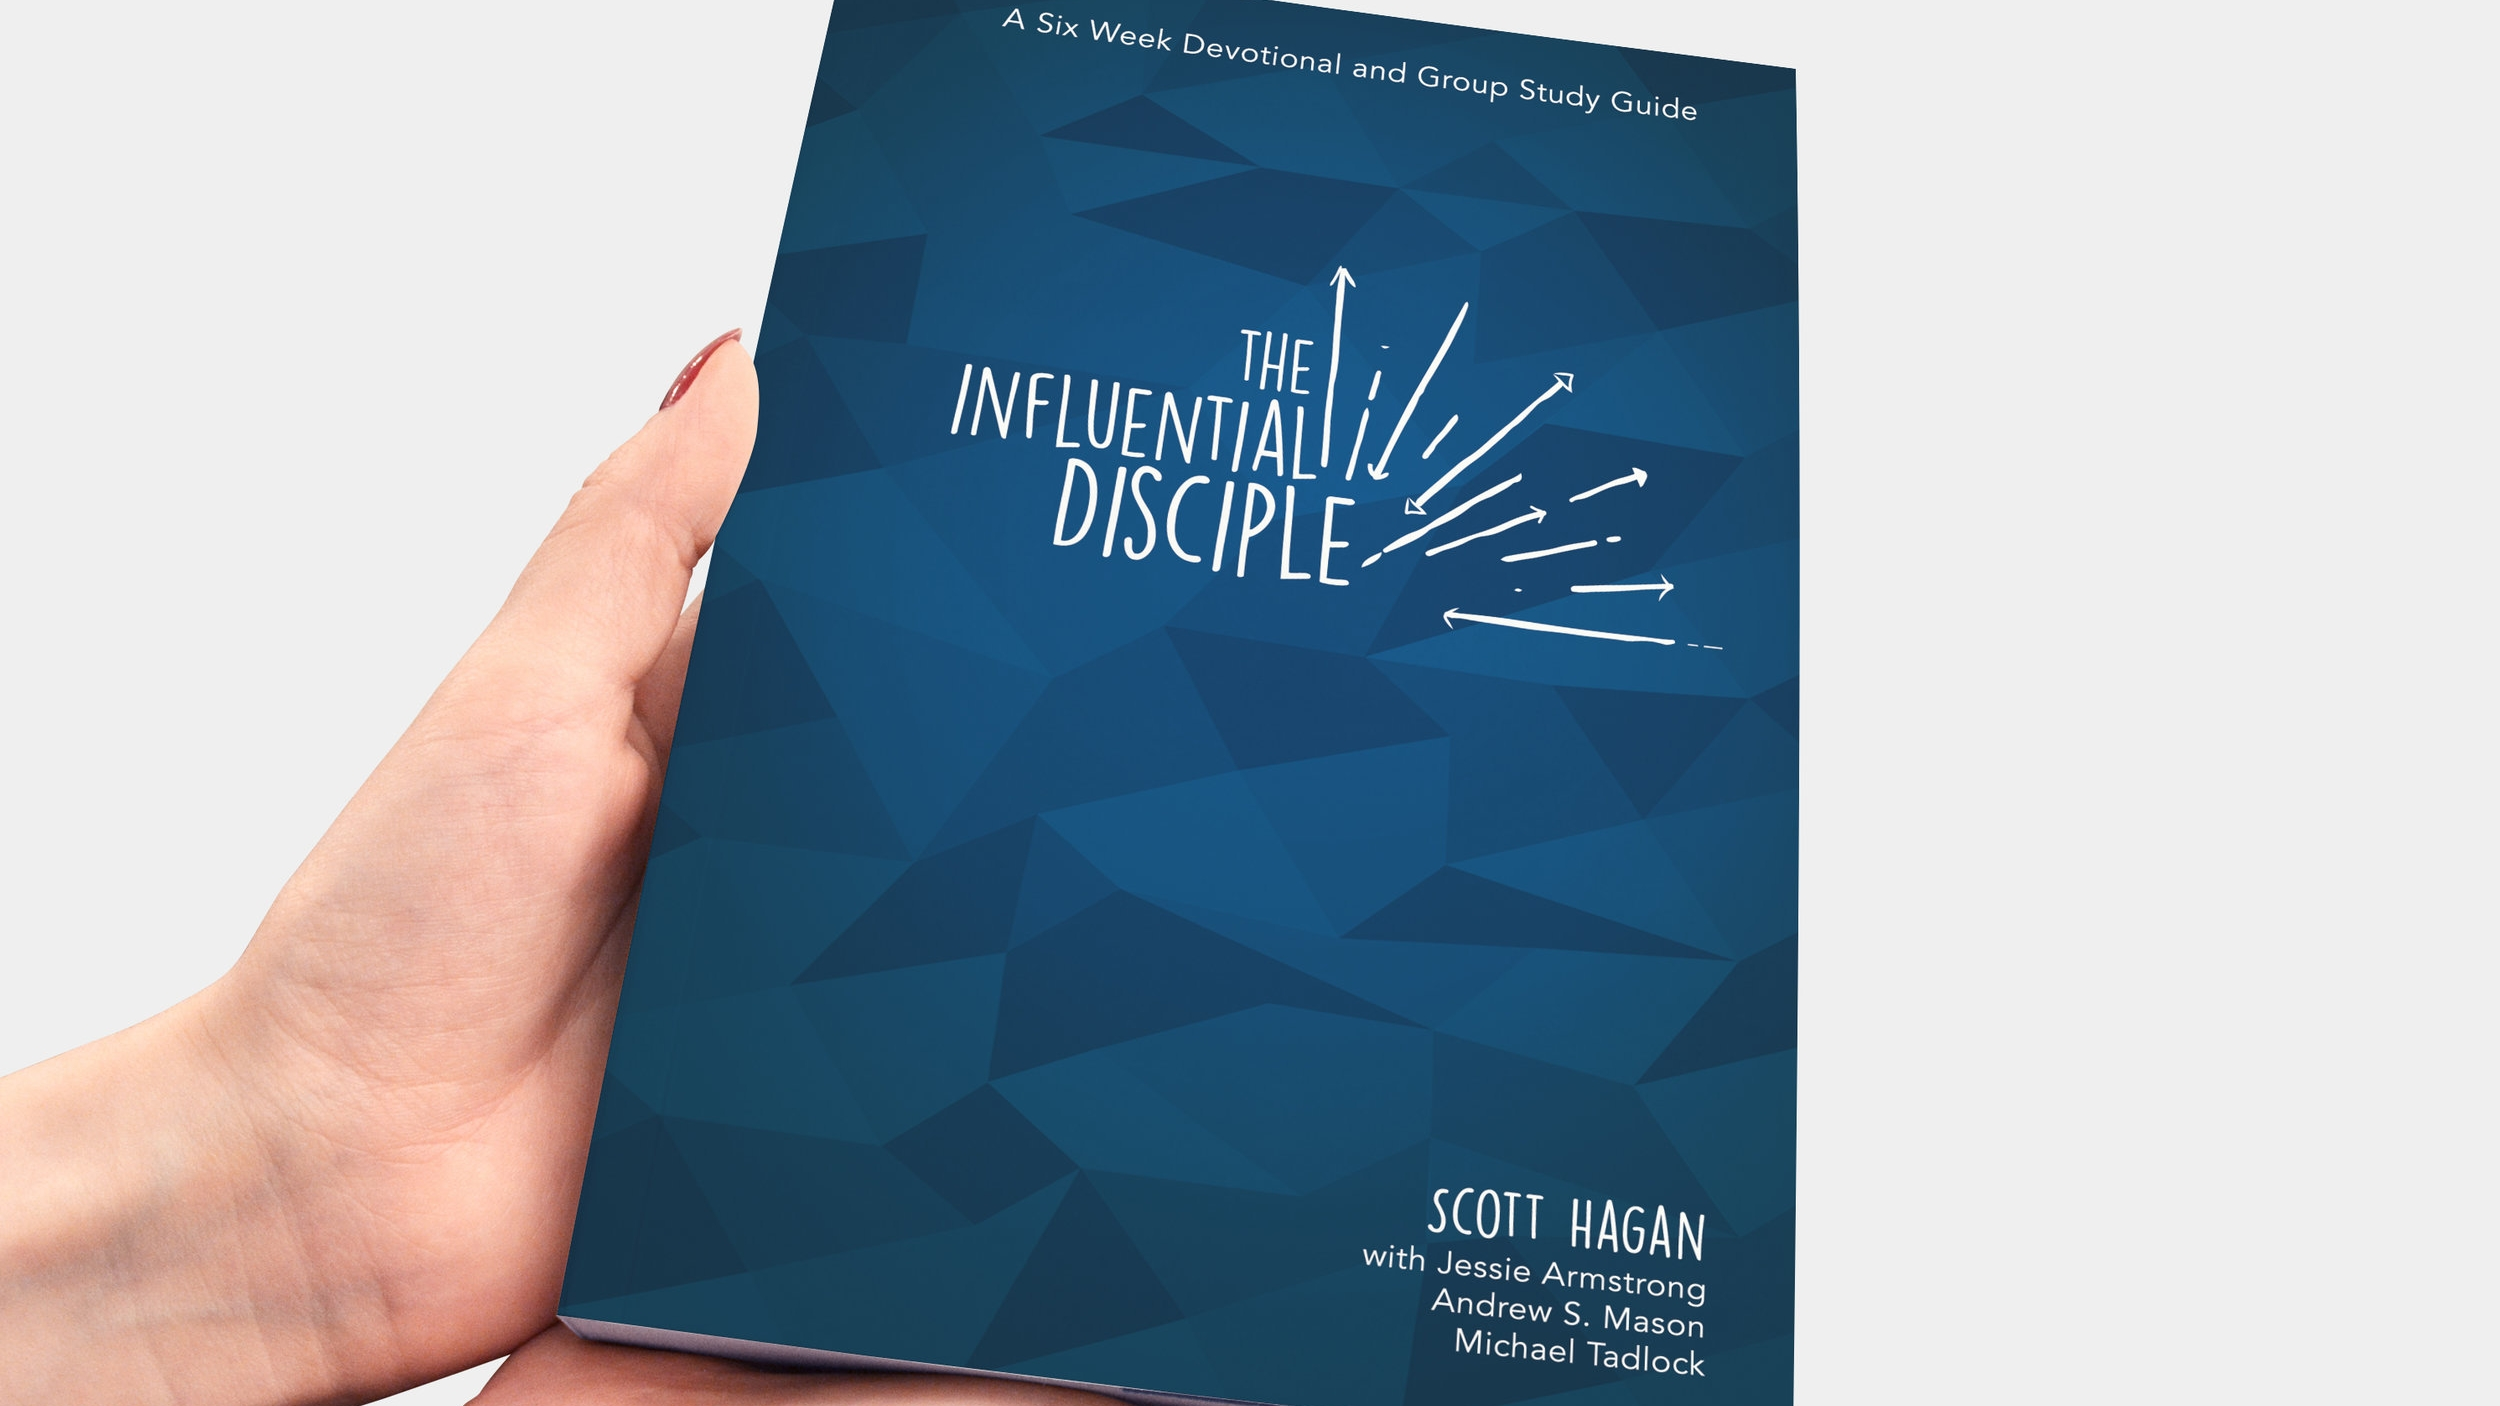 Book Cover for Scott Hagan